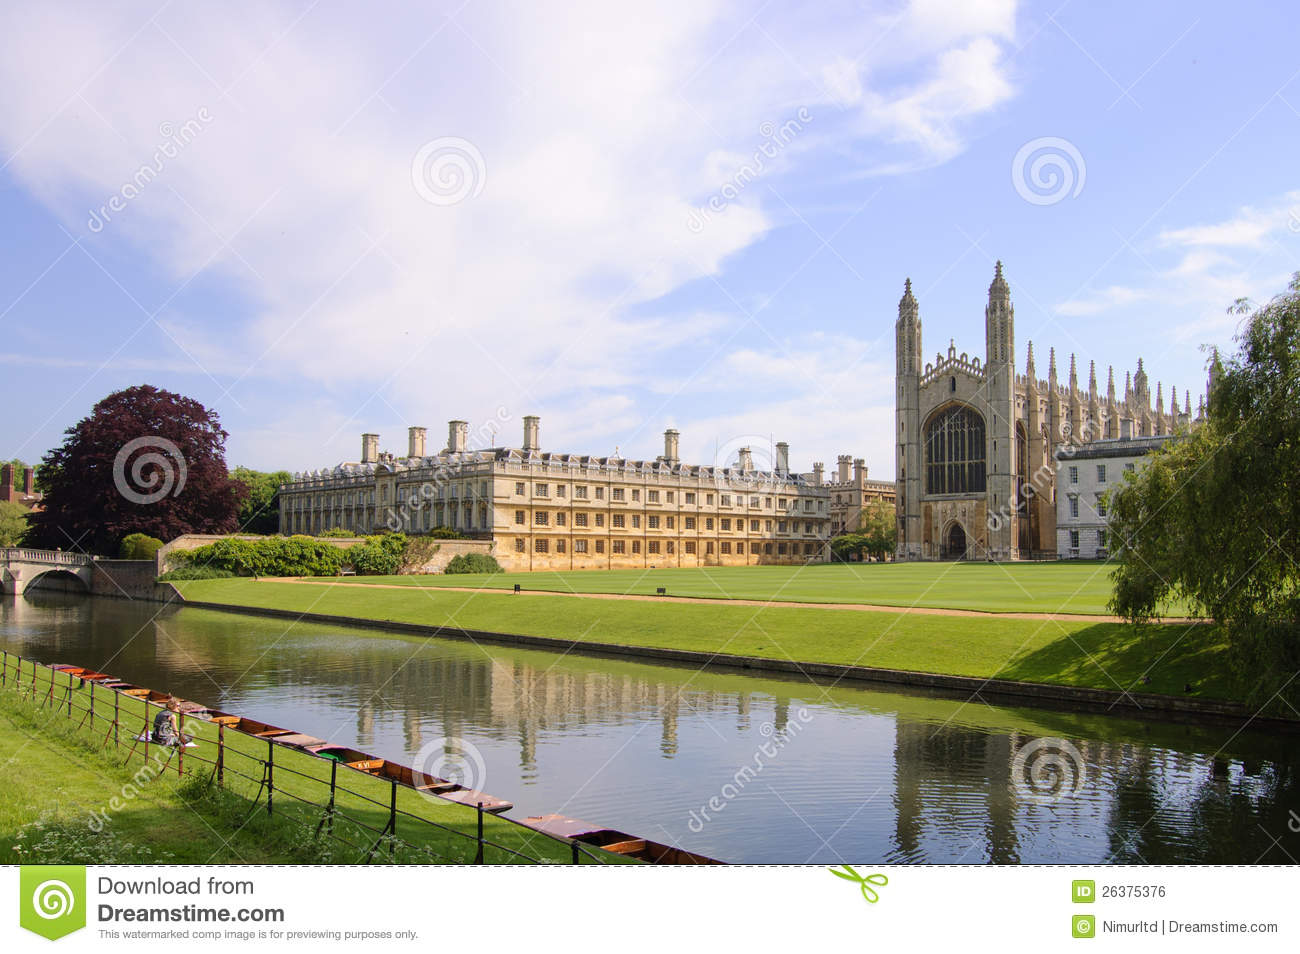 Reyes College y capilla, Cambridge